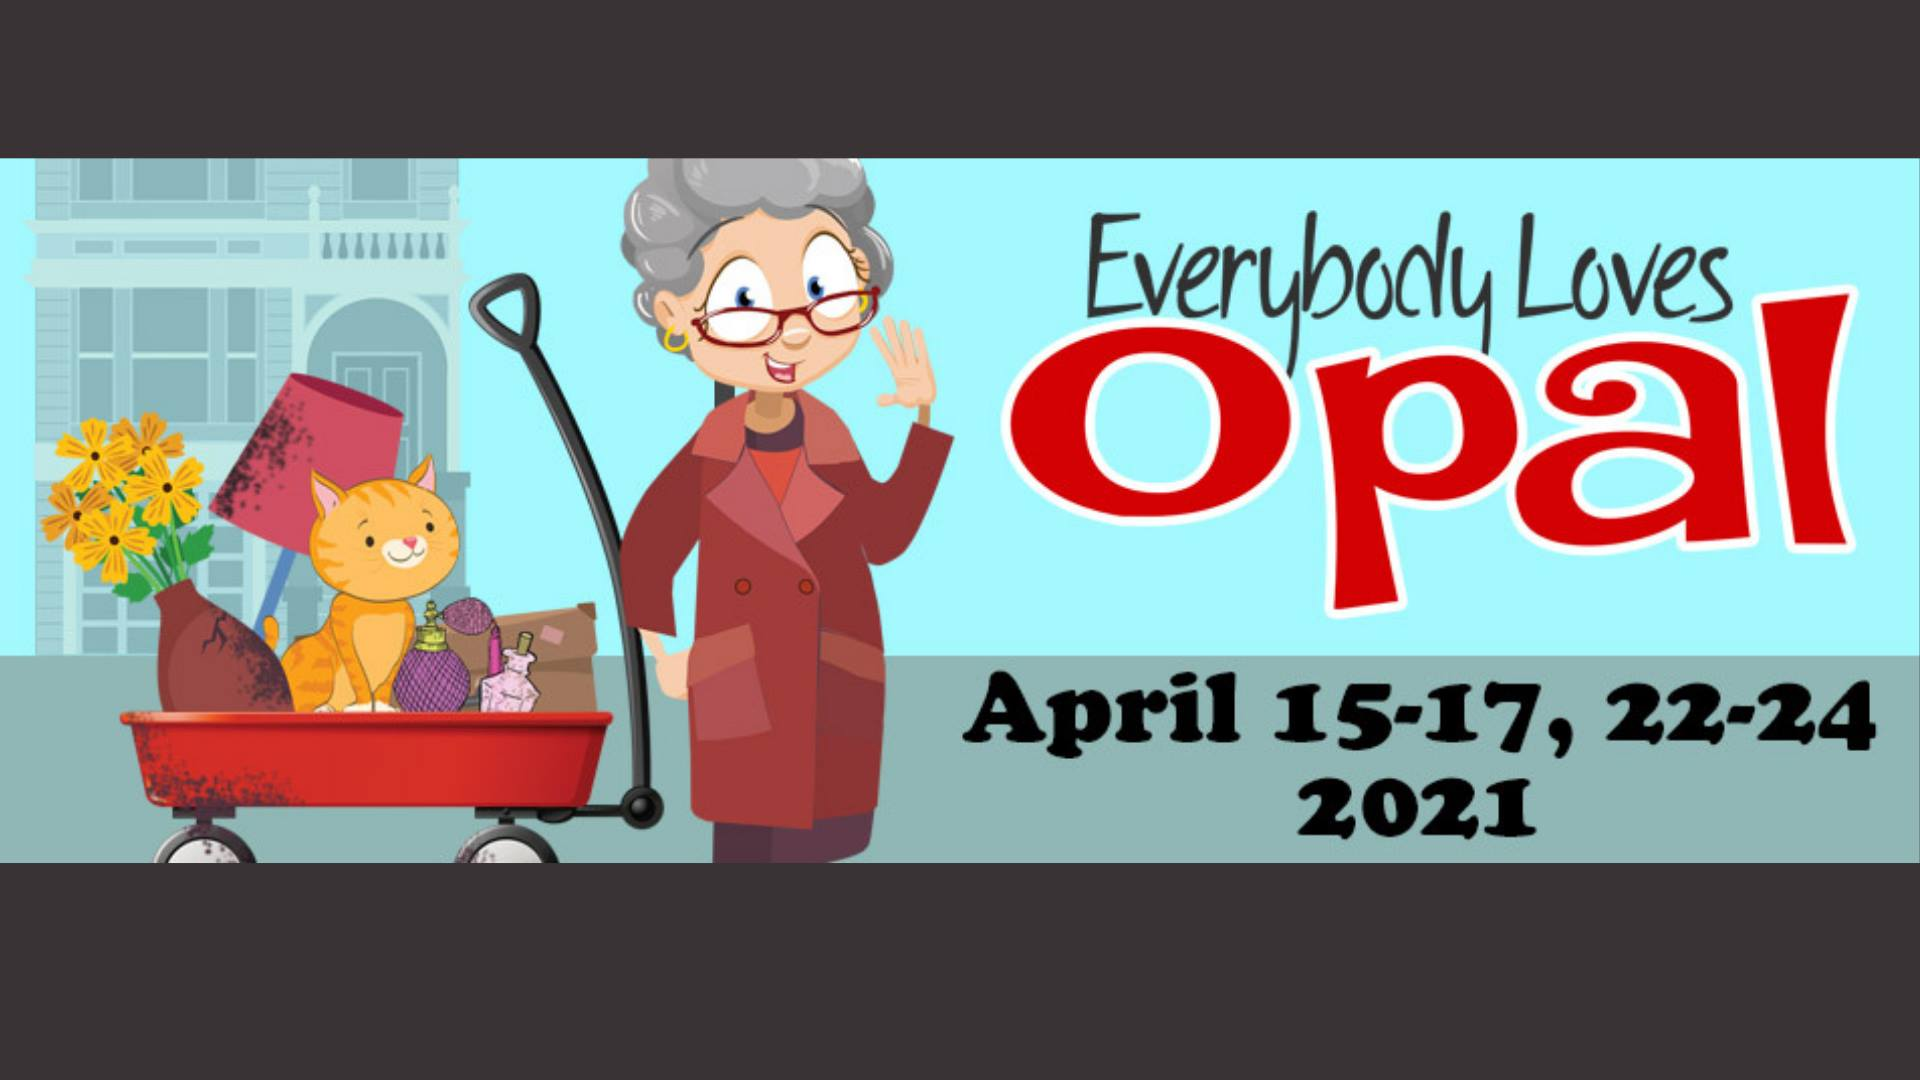 Everybody Loves Opal. April 15-17